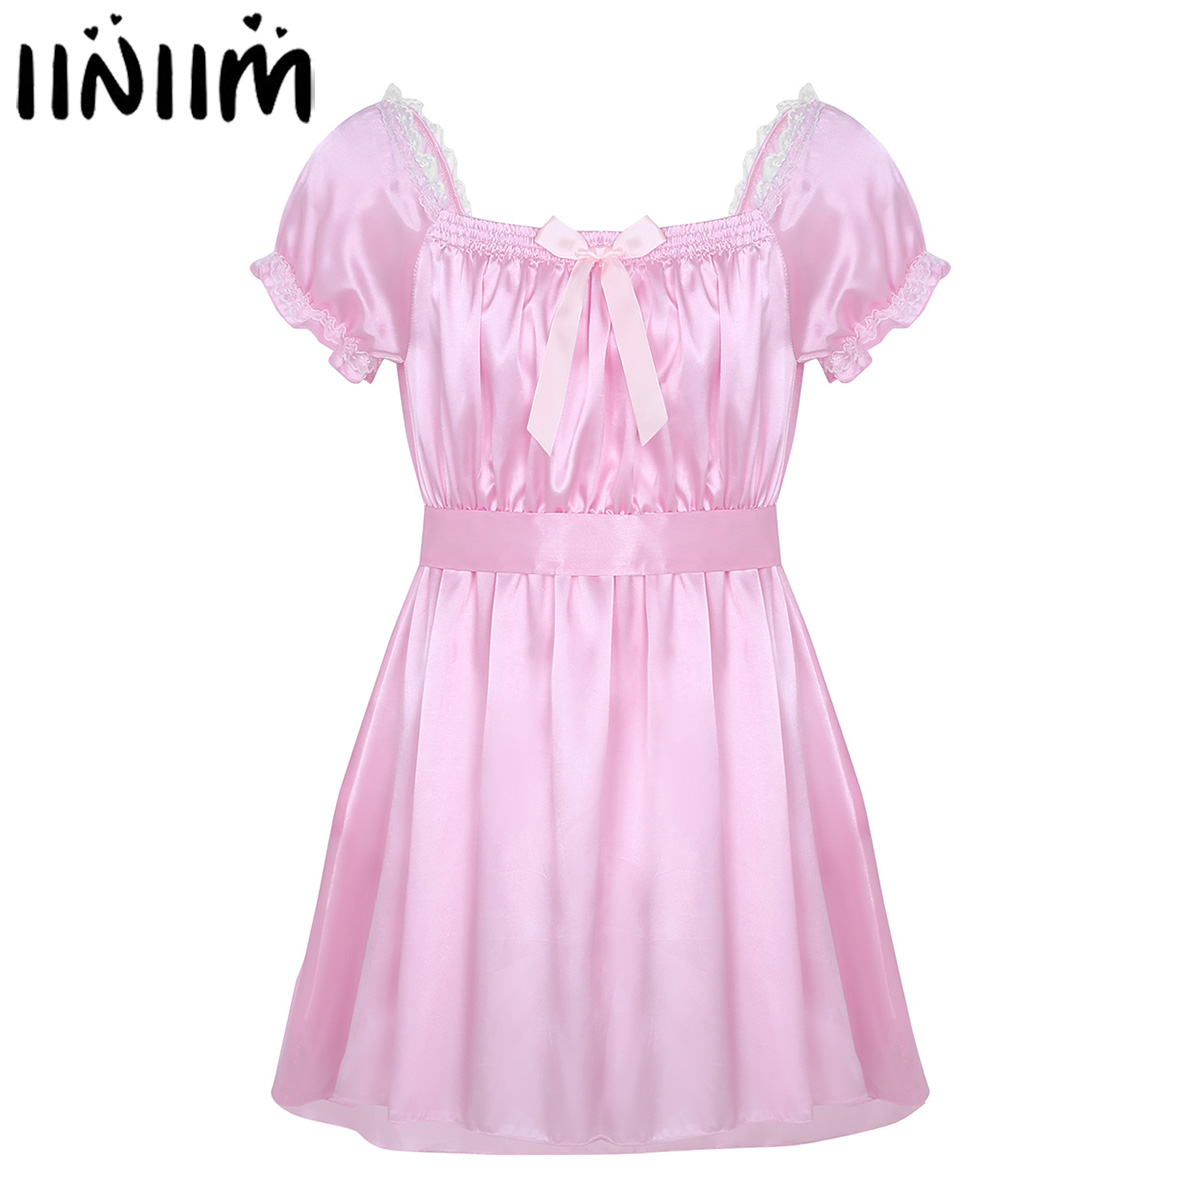 <font><b>Mens</b></font> <font><b>Sexy</b></font> <font><b>Lingerie</b></font> Underwear Dress Babydoll Costumes Shiny Crossdress Male with Sash Gay Bowknot Sissy Panties Underpants image